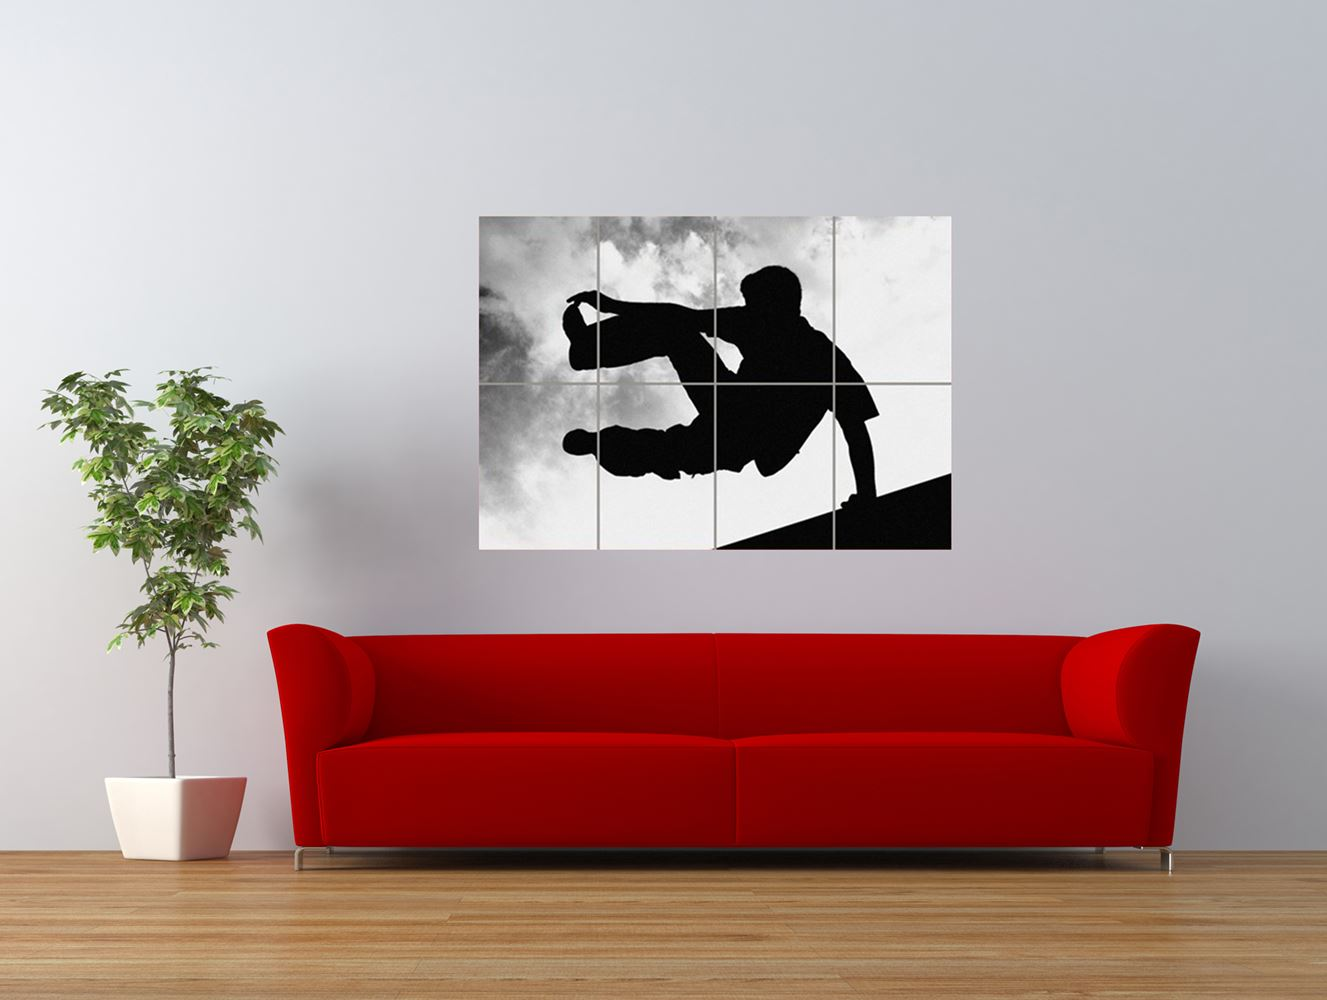 parkour free running sihouette jump giant art print panel poster nor0533 ebay. Black Bedroom Furniture Sets. Home Design Ideas